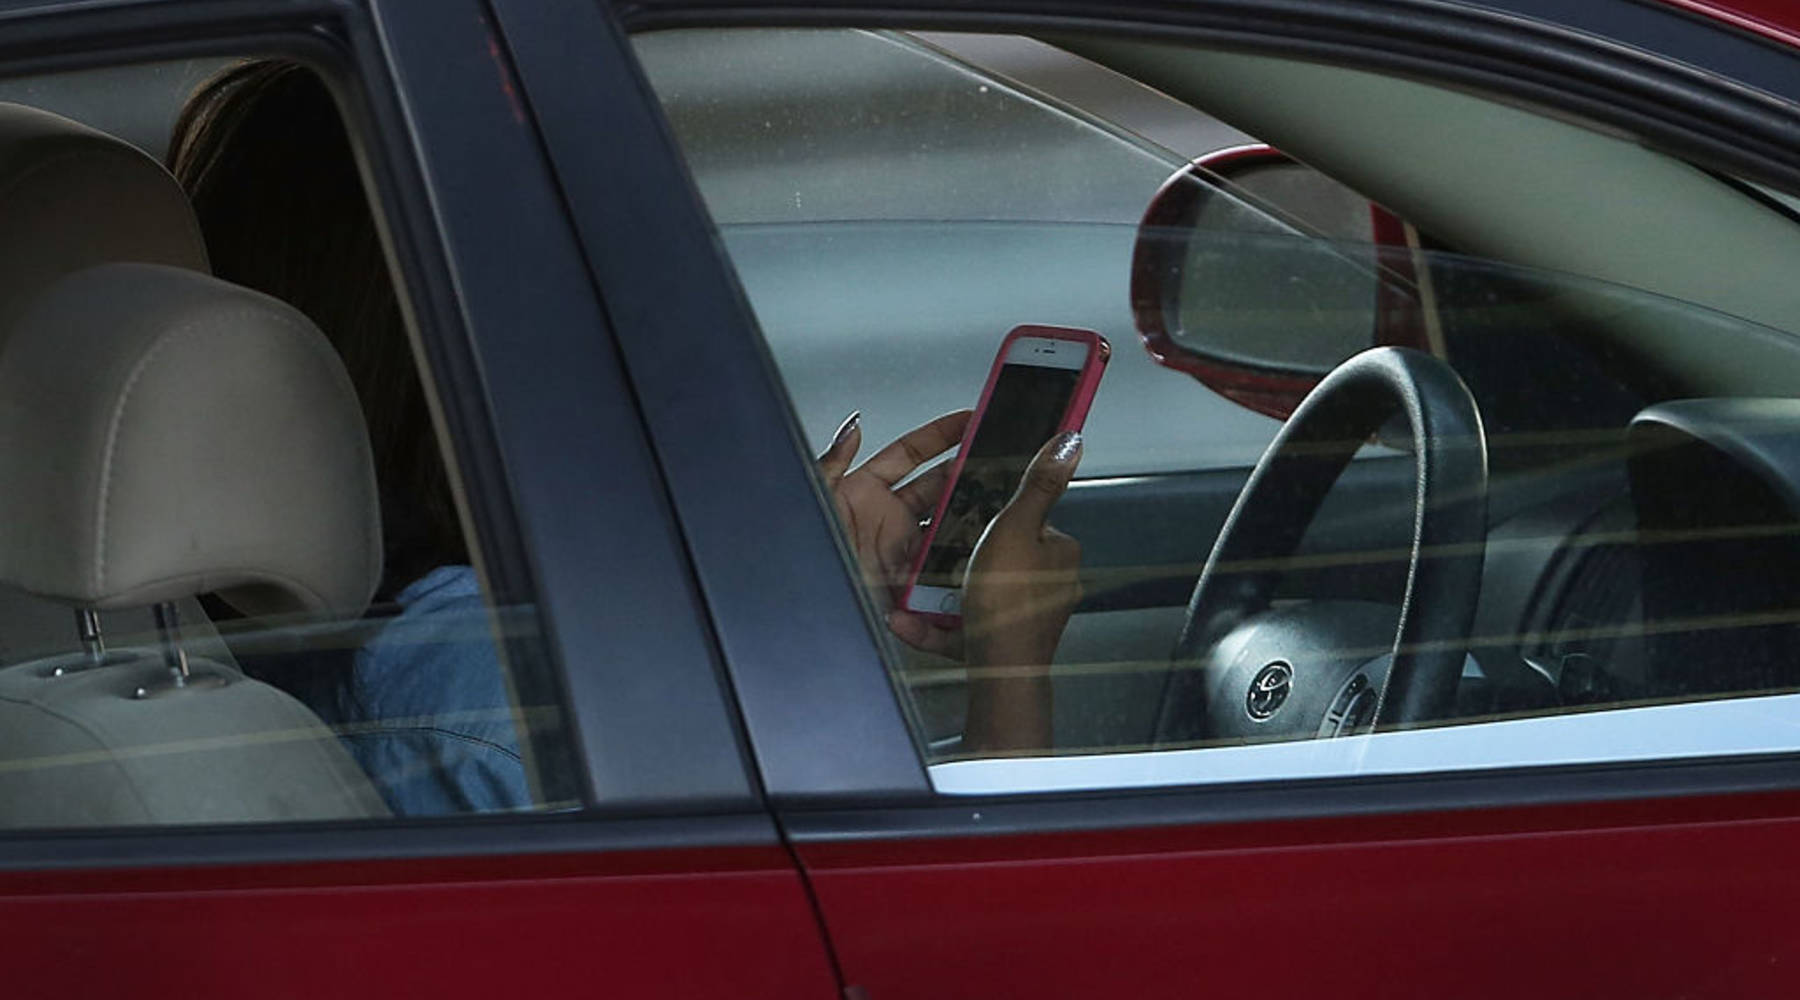 New device detects texting while driving, but is it legal